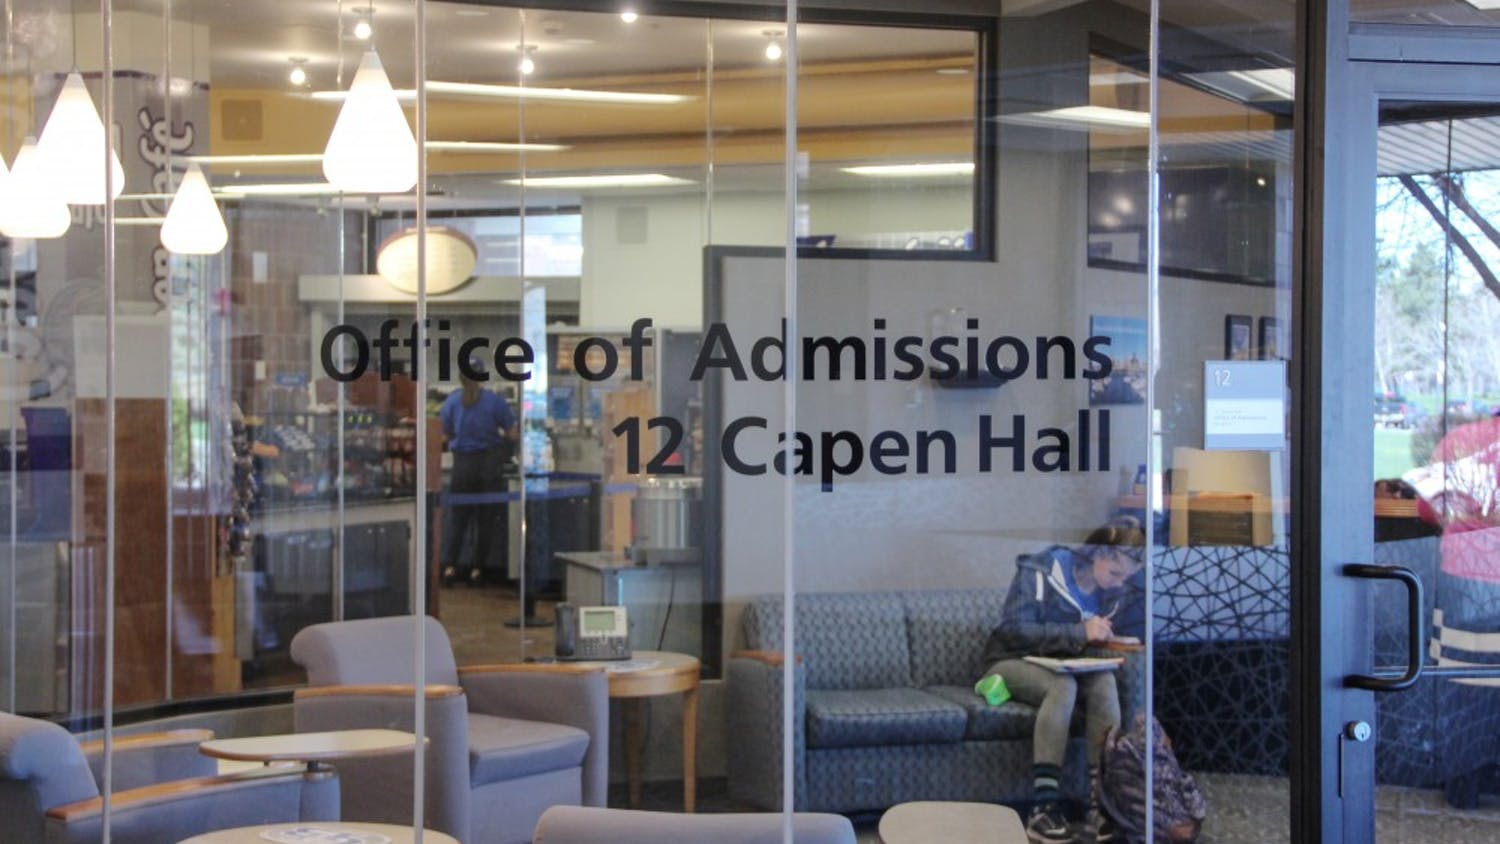 The Office of Admissions has had to do things differently during COVID.